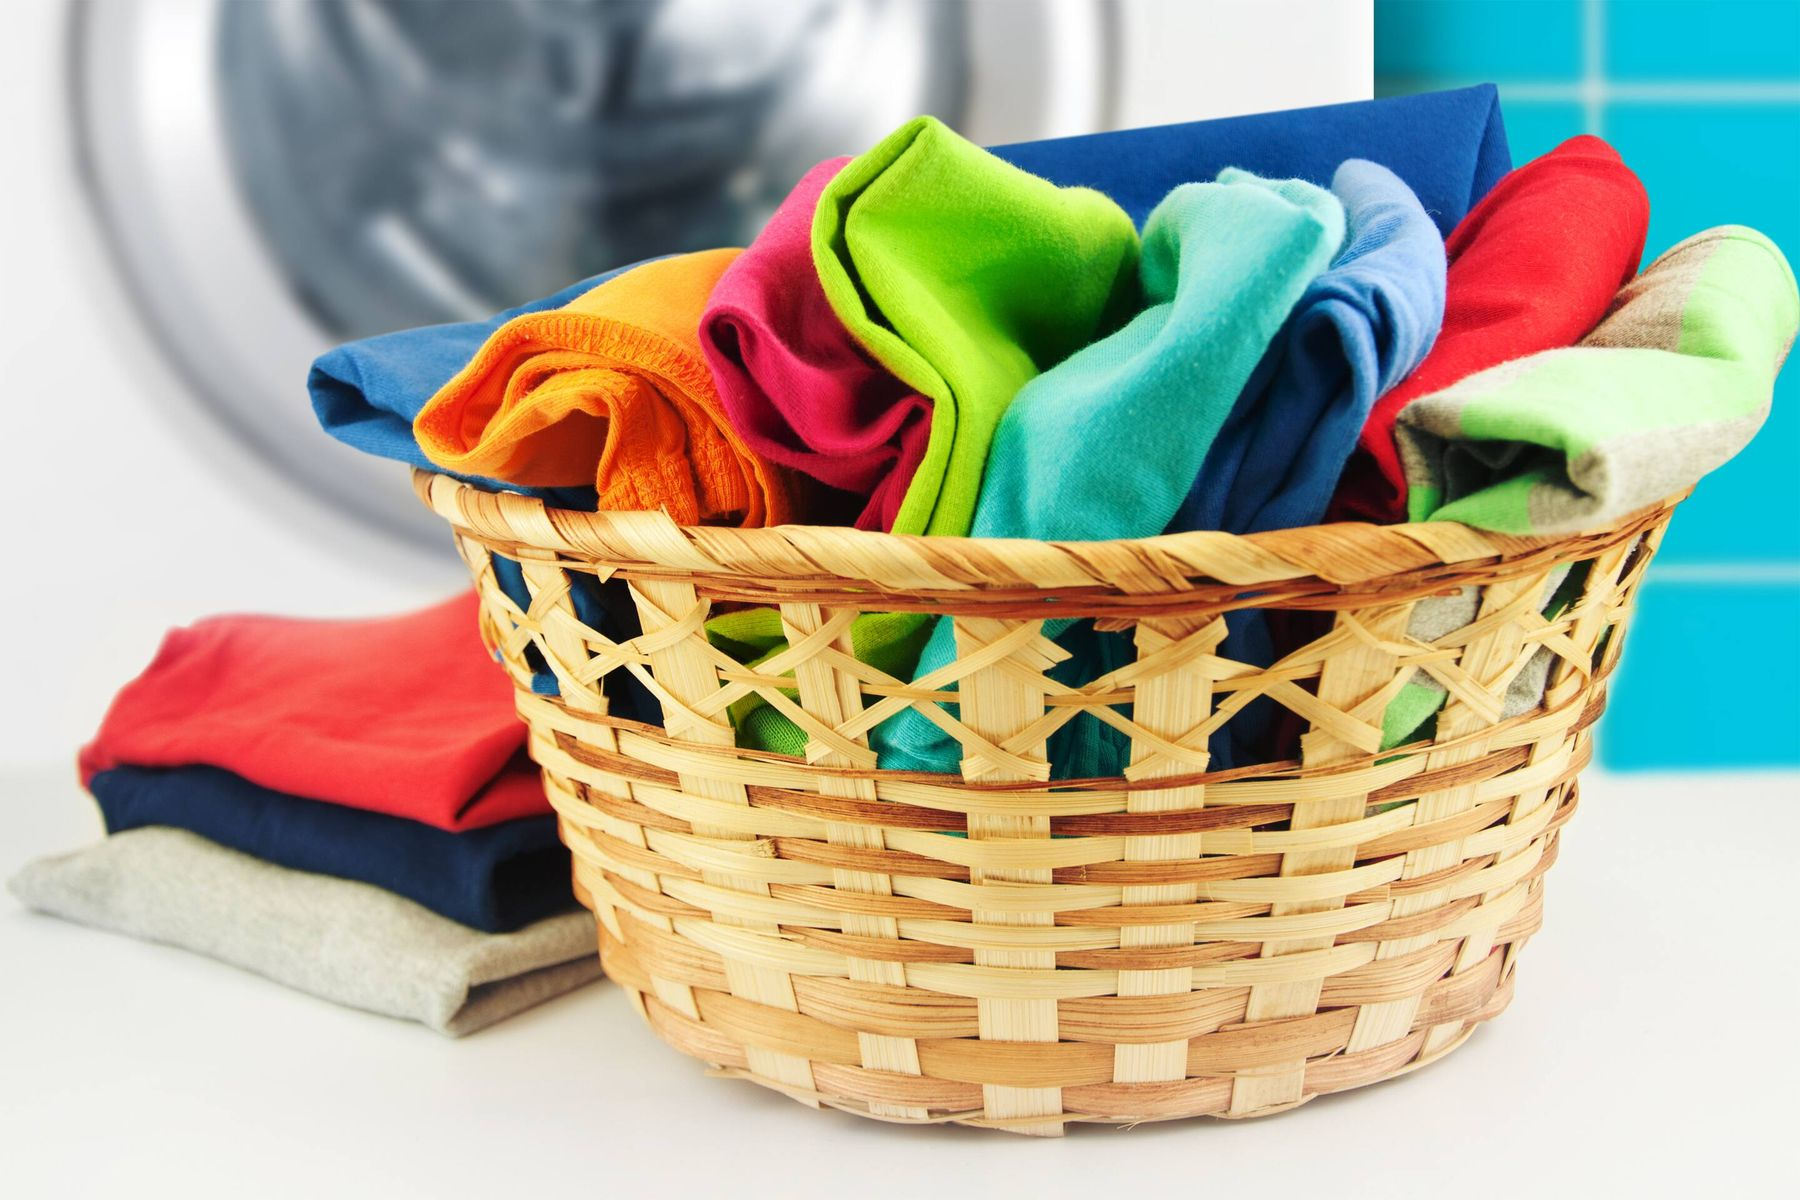 Laundry Separation tips